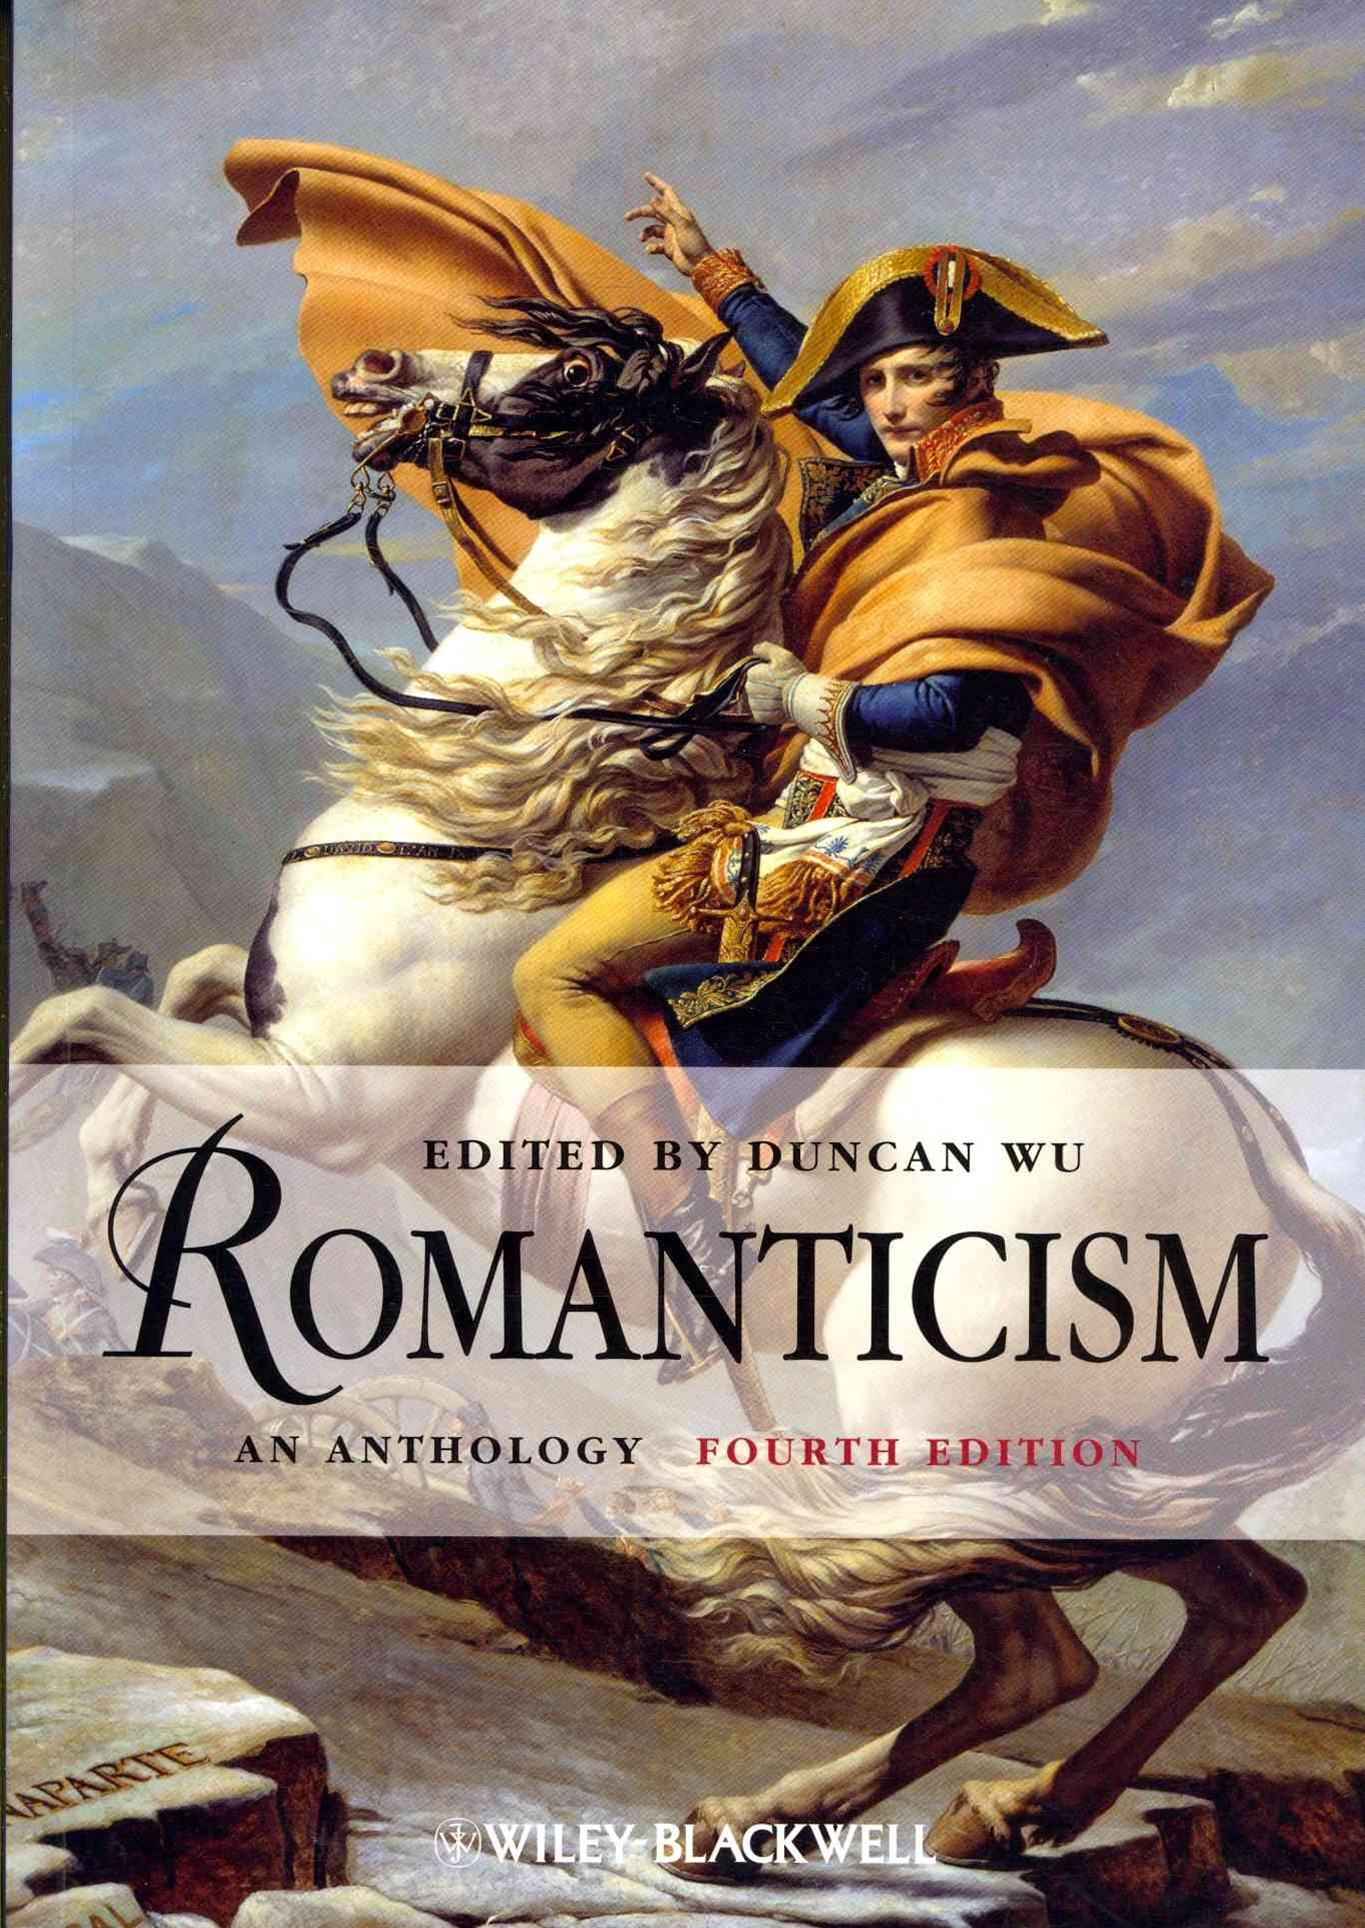 Romanticism - an Anthology 4E